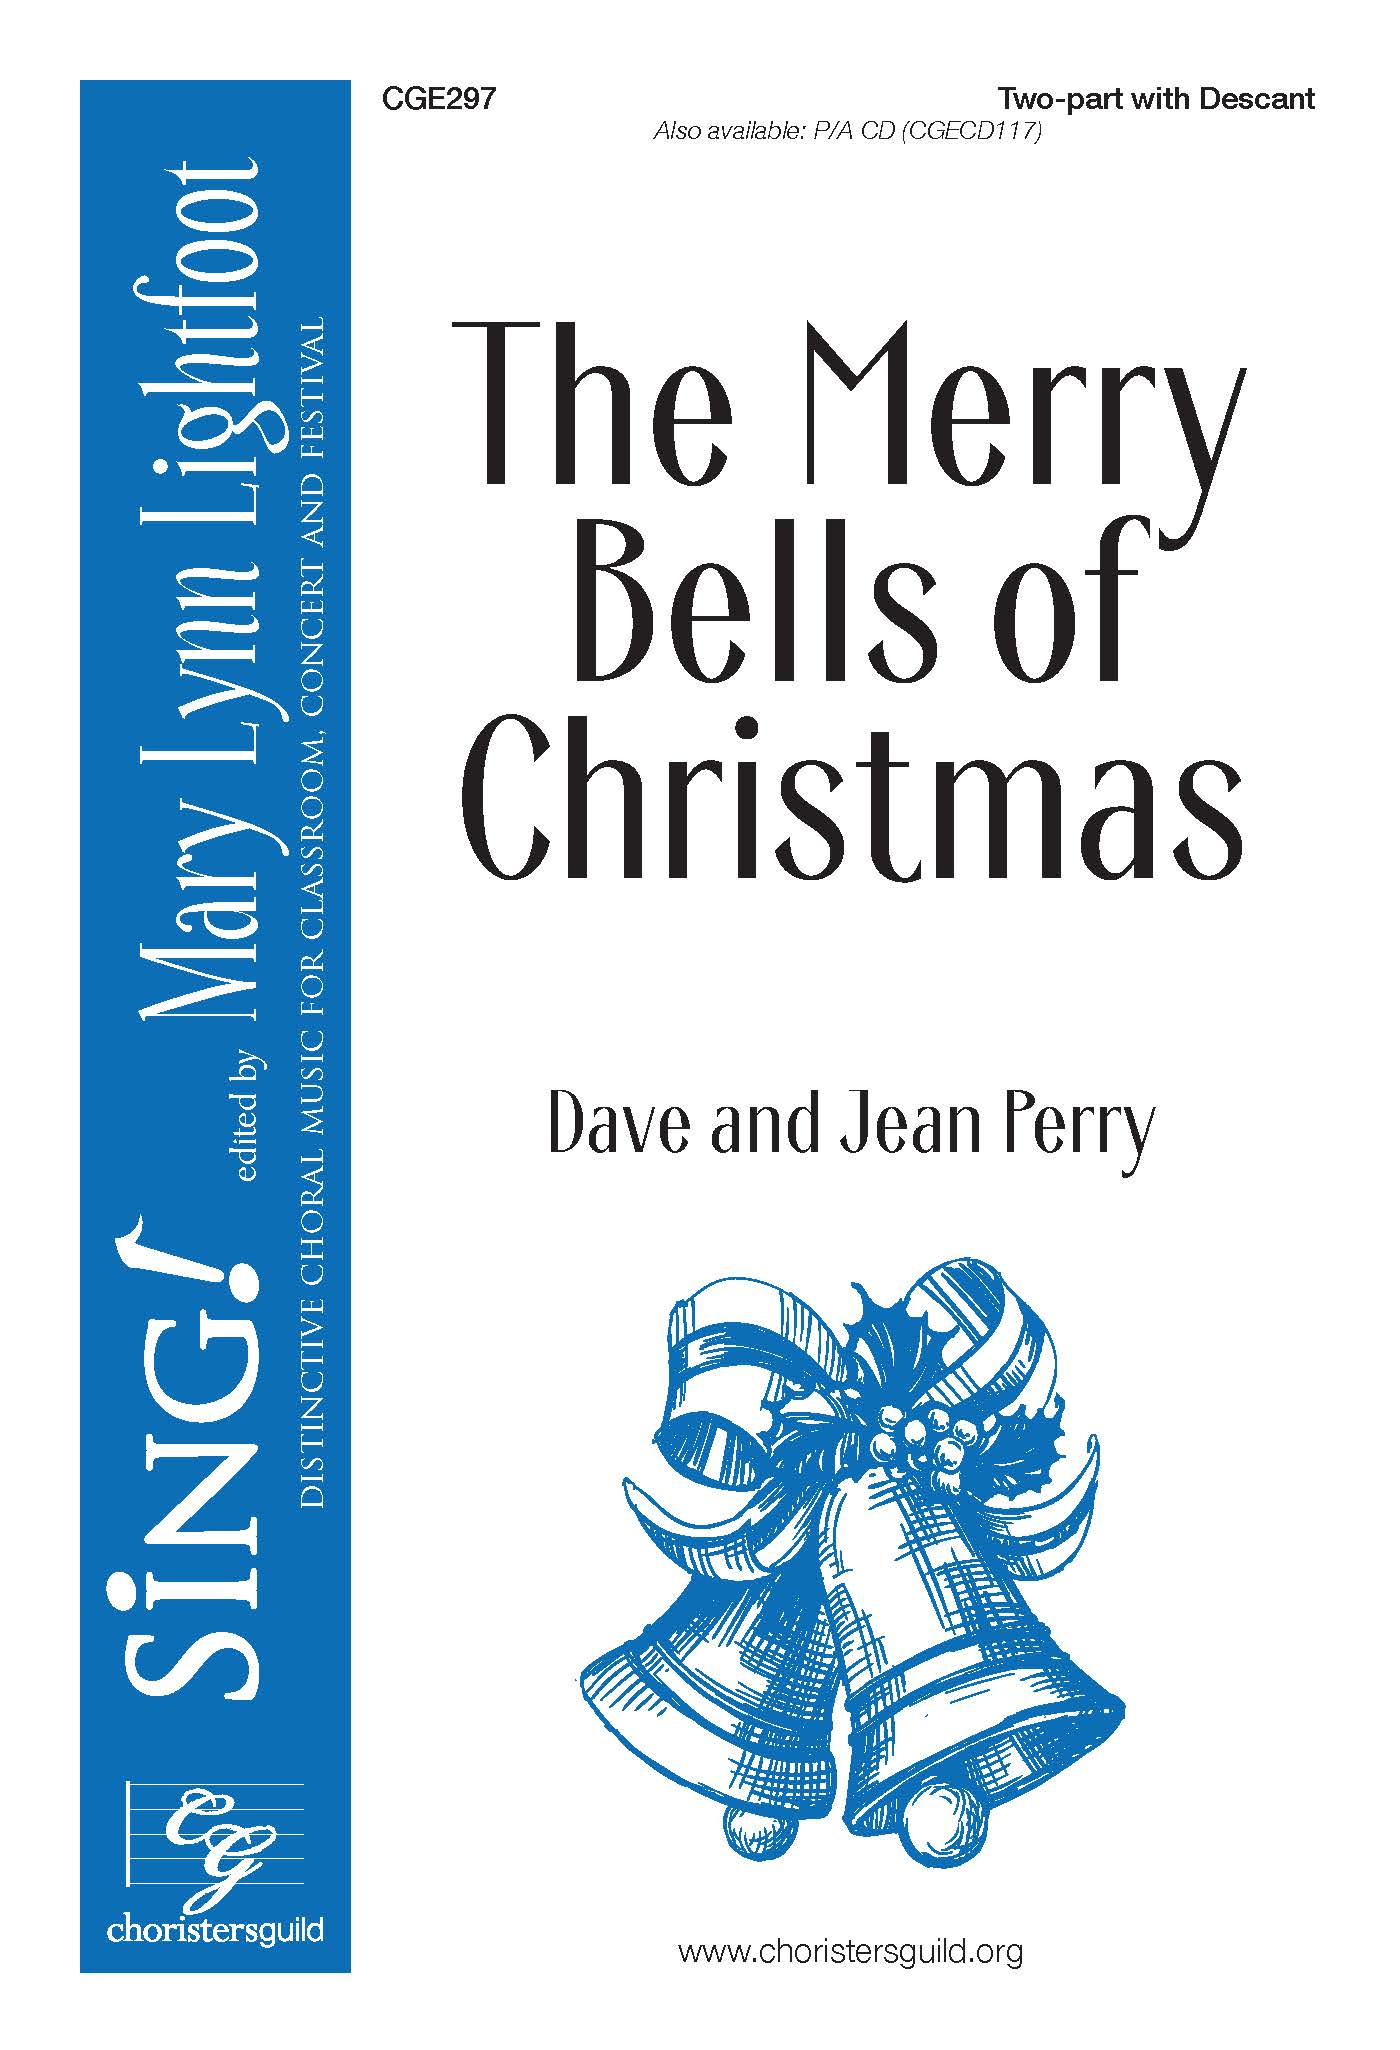 The Merry Bells of Christmas - Two-part